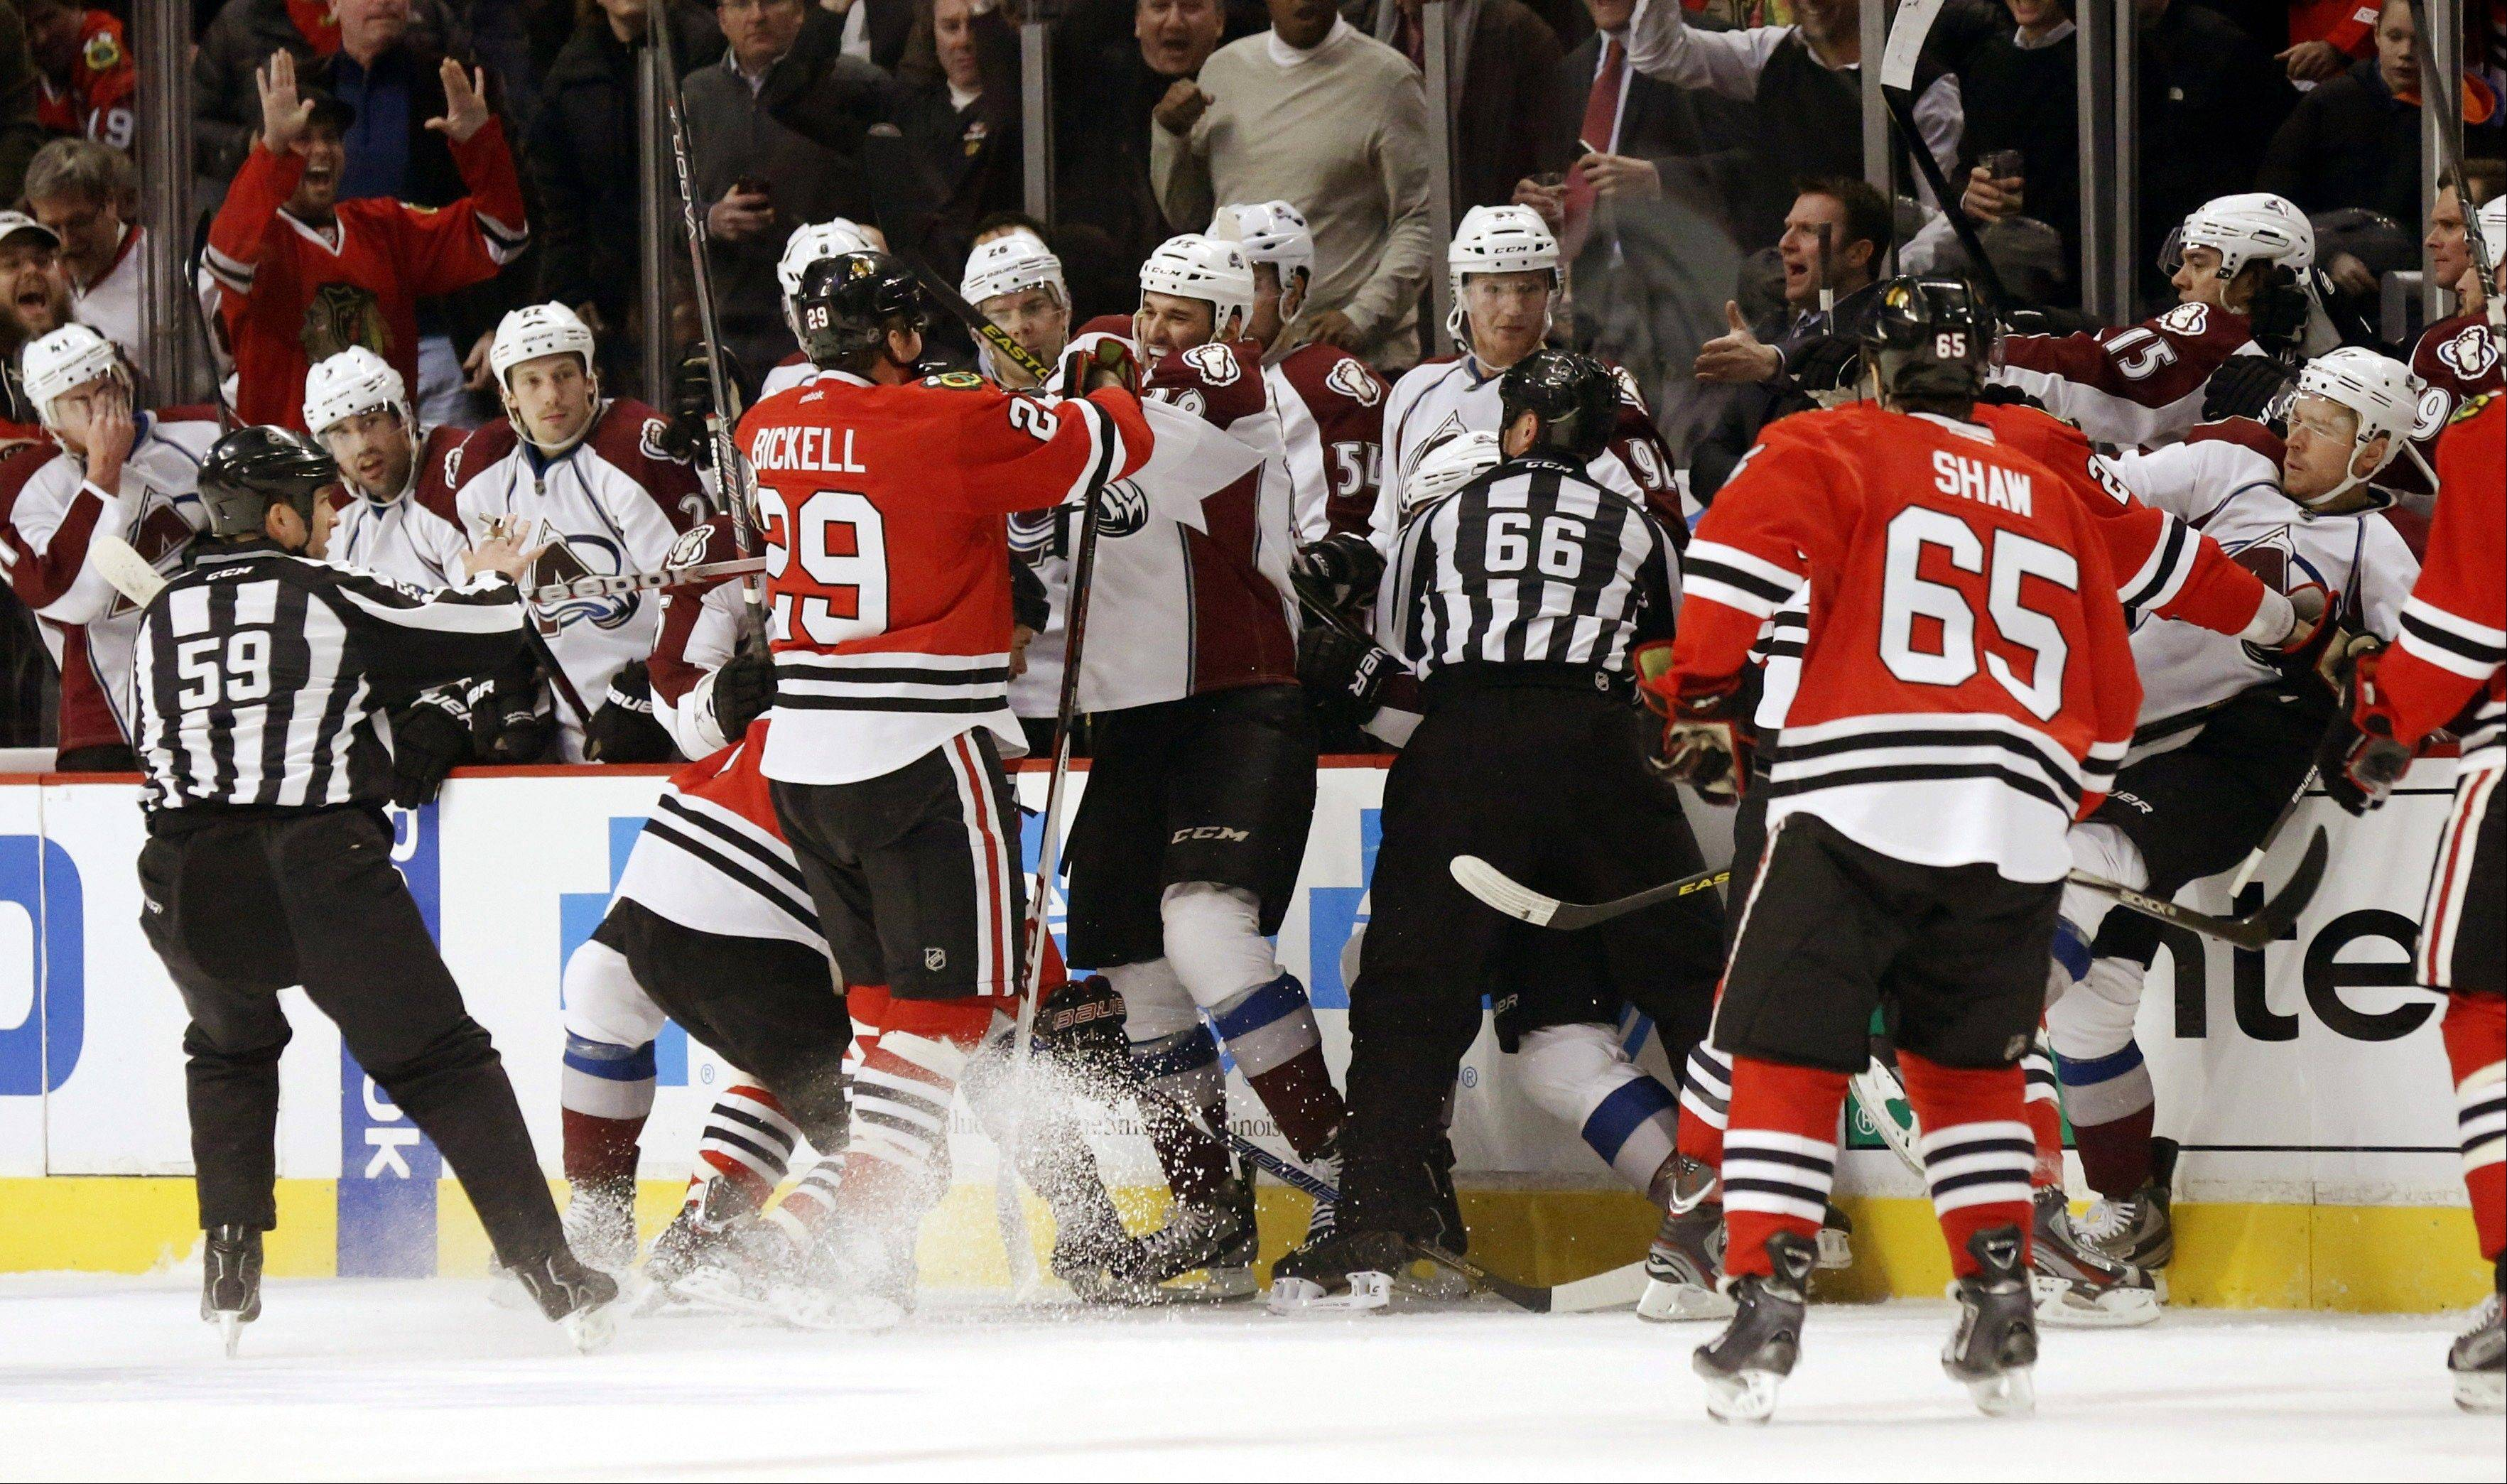 A scuffle breaks out between the Chicago Blackhawks and the Colorado Avalanche in front of the Avalanche bench during the first period.